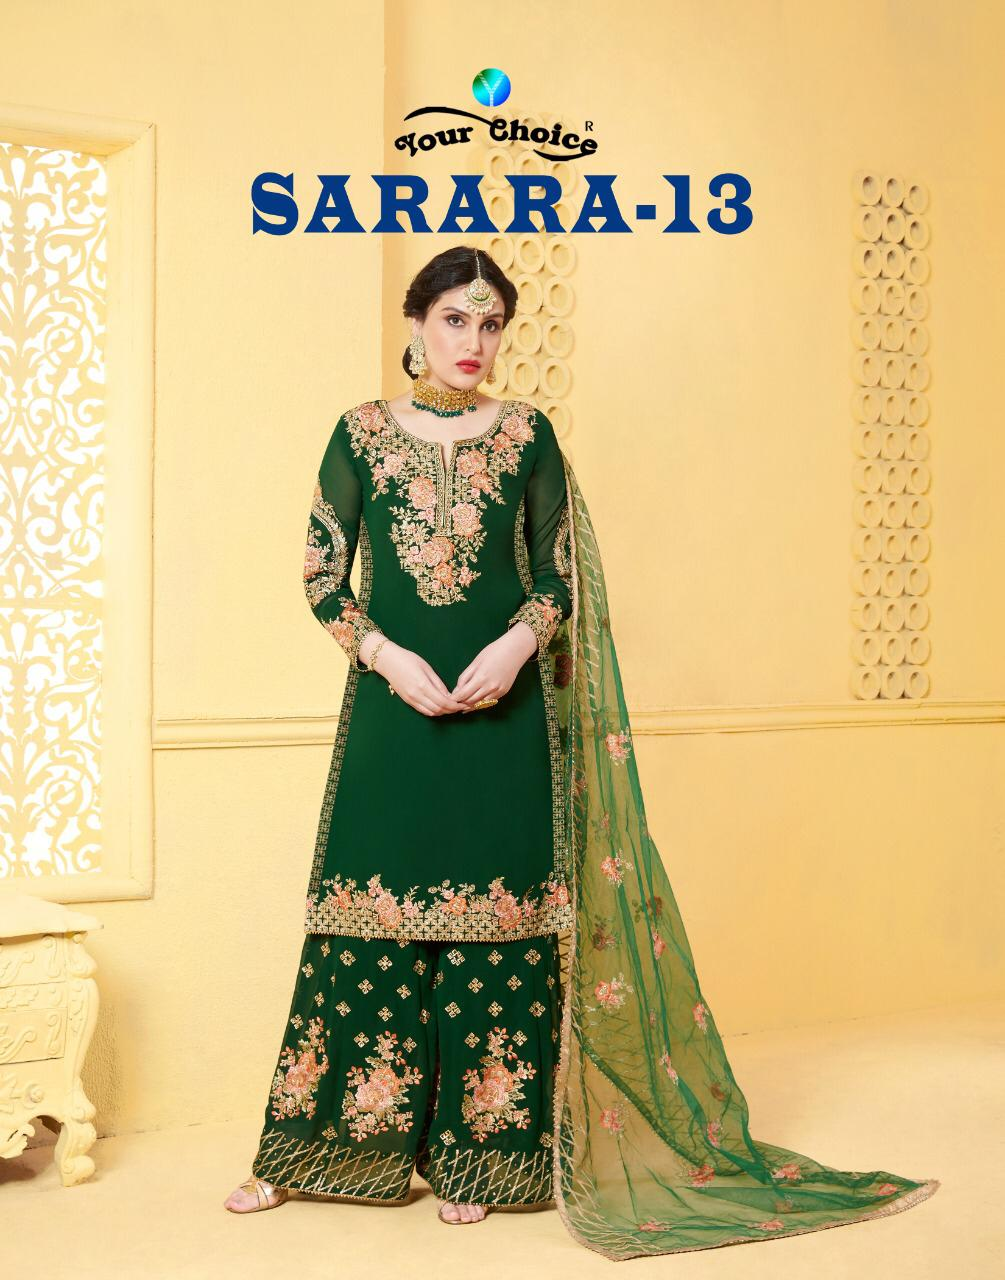 Your Choice Sarara 13 Designer Heavy Georgette Salwar Suit Catalog Collection